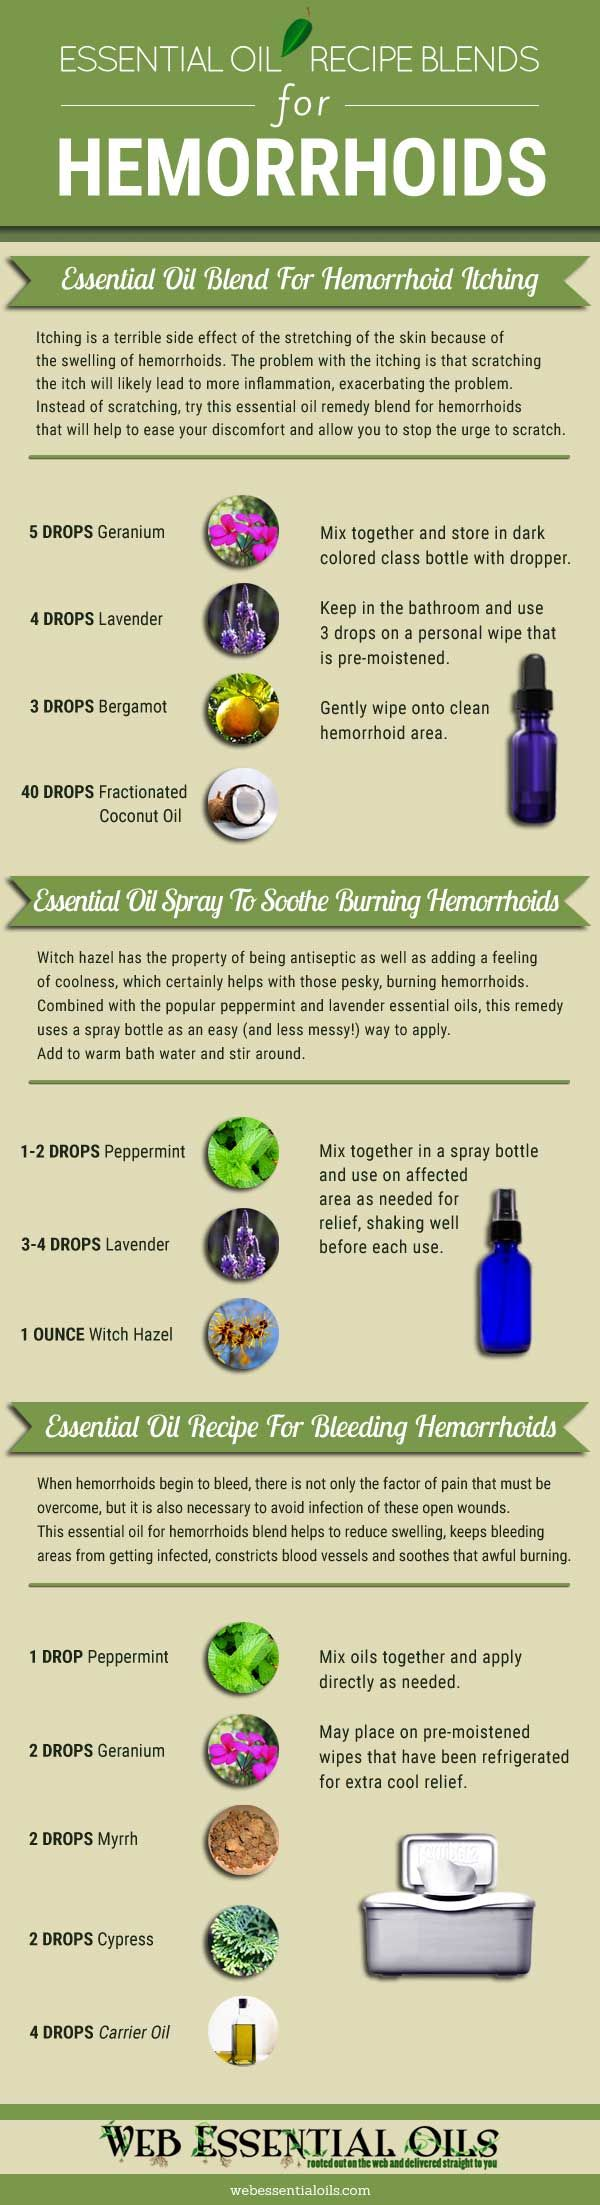 Natural Ways To Heal Hemroids